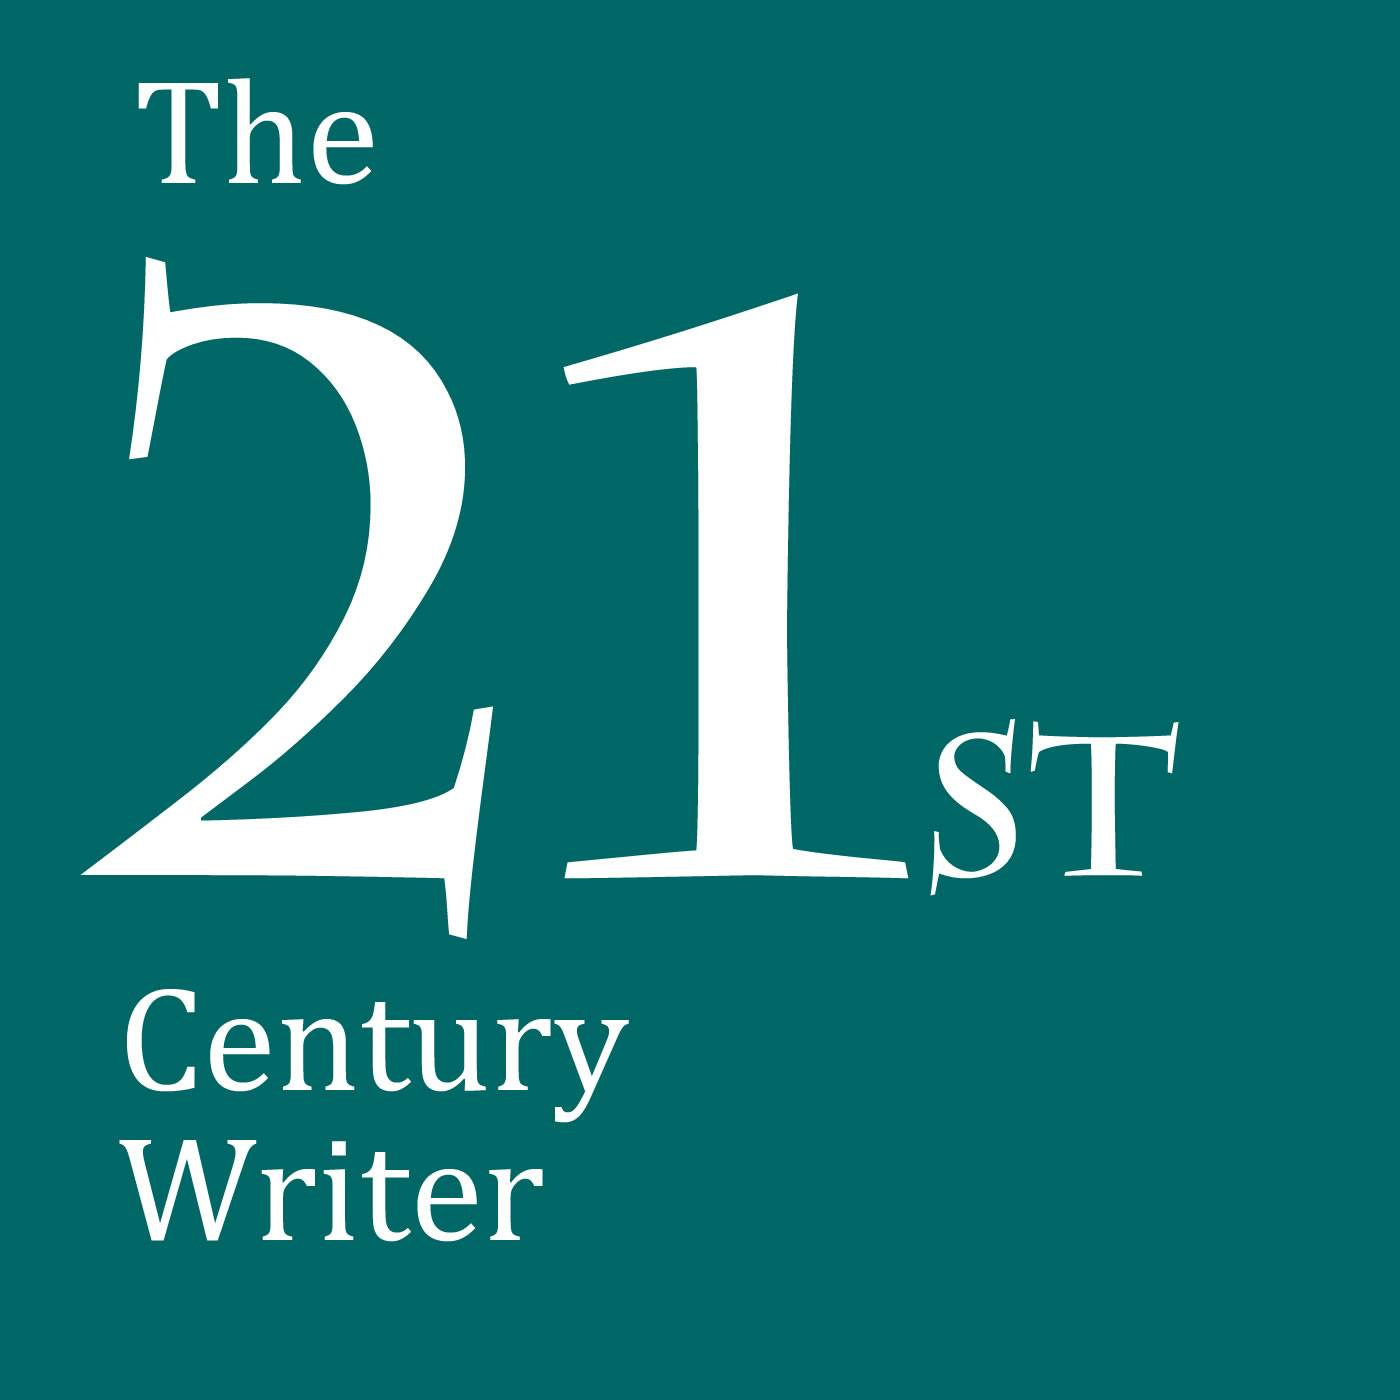 The 21st Century Writer